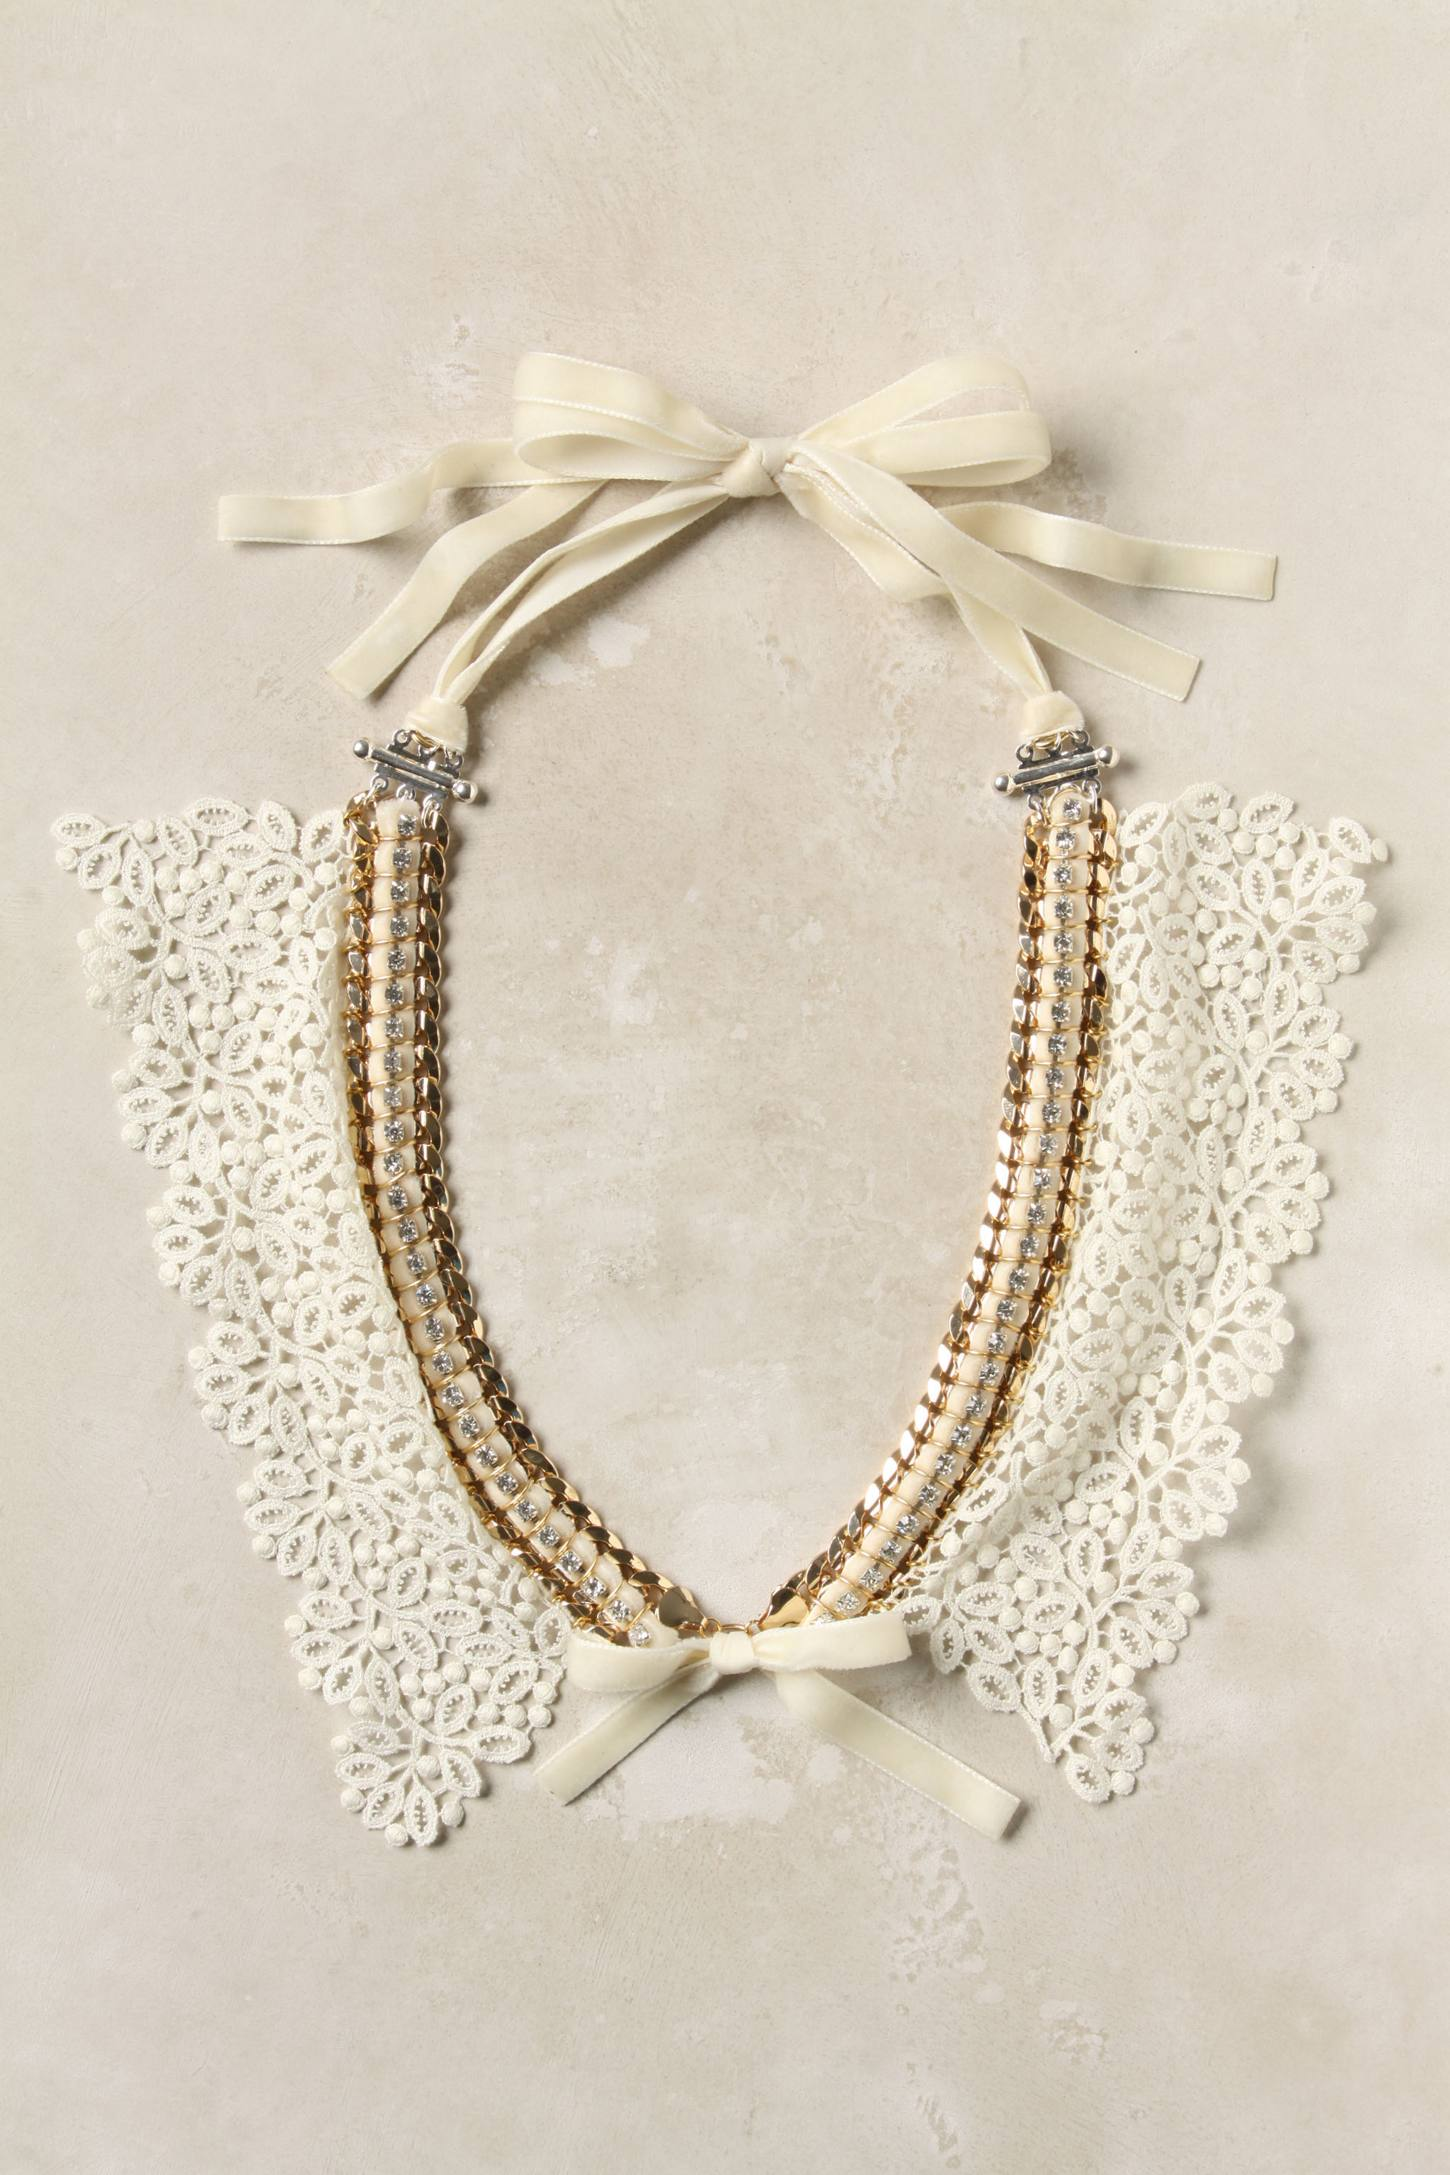 Chained Lace Bib - Anthropologie.com :  necklace bow chain victorian